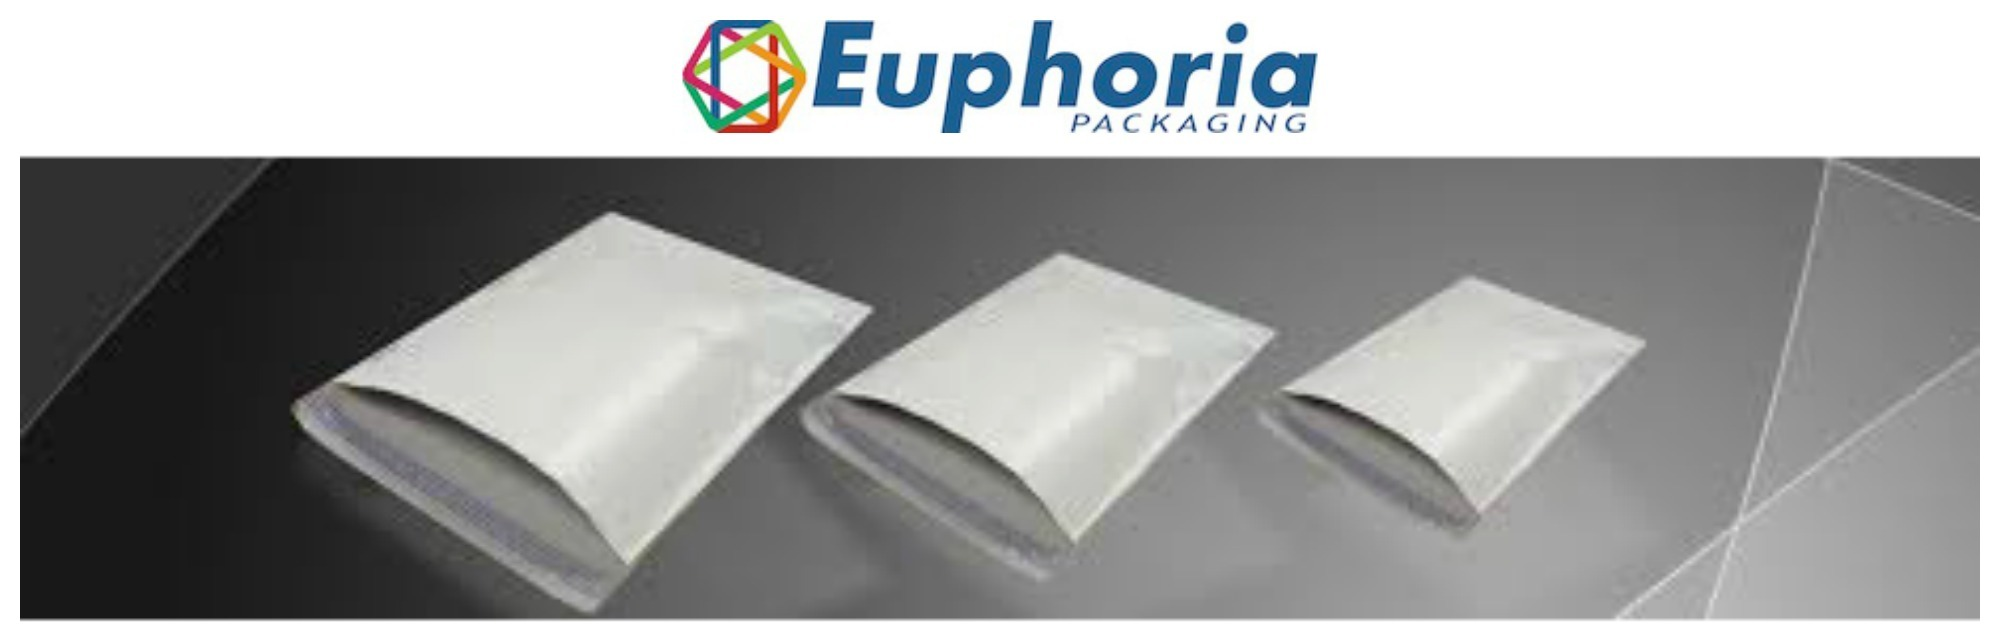 Air Bubble Packaging Bags